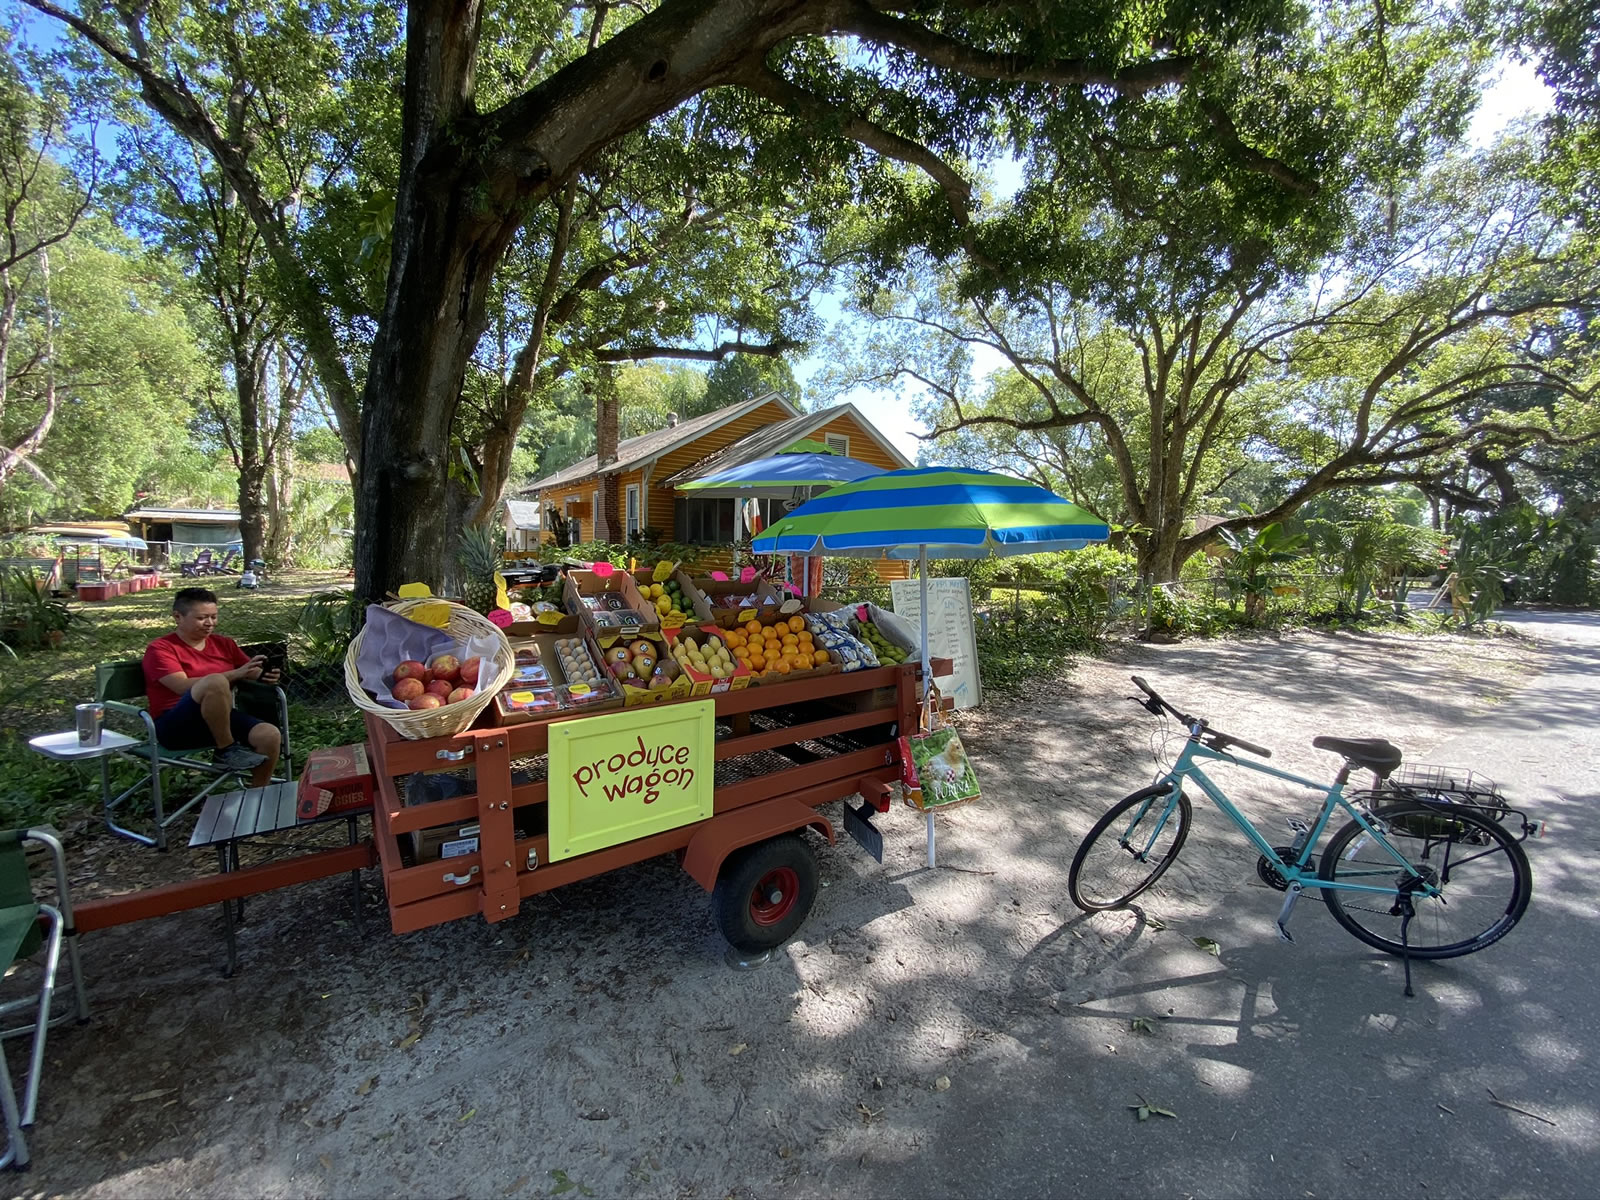 Wide-angle photo of the Produce Wagon from its left side, with Fabiola in a lawn chair behind the wagon, a large oak tree and house in the background, and Joey's light blue bicycle on the right.